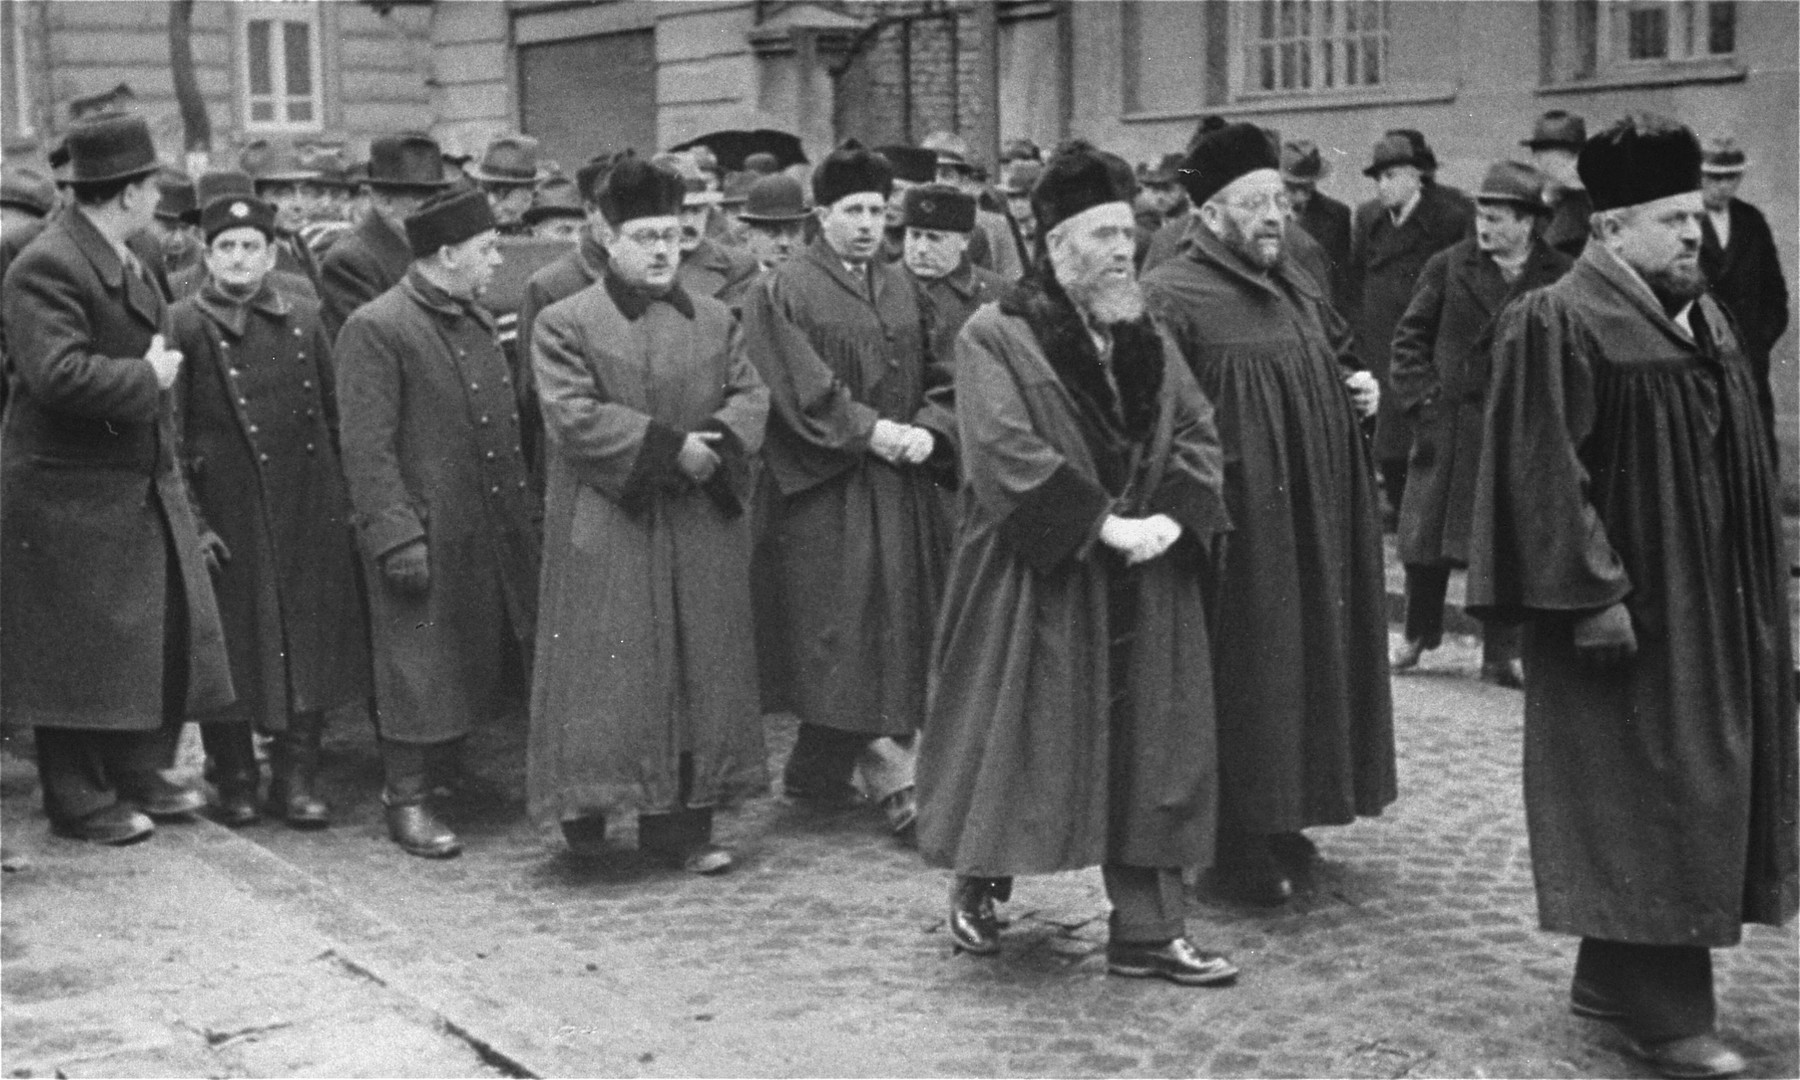 Dr. Asher Hananel, Chief Rabbi of Sofia (at the right in the foreground), leads a funeral procession for Nissim Yasharoff (the donor's grandfather) through the streets of Sofia.    The funeral took place a few days after the arrival of German troops in Bulgaria.  Also pictured is Rabbi Daniel Zion, Chief Rabbi of Bulgaria.